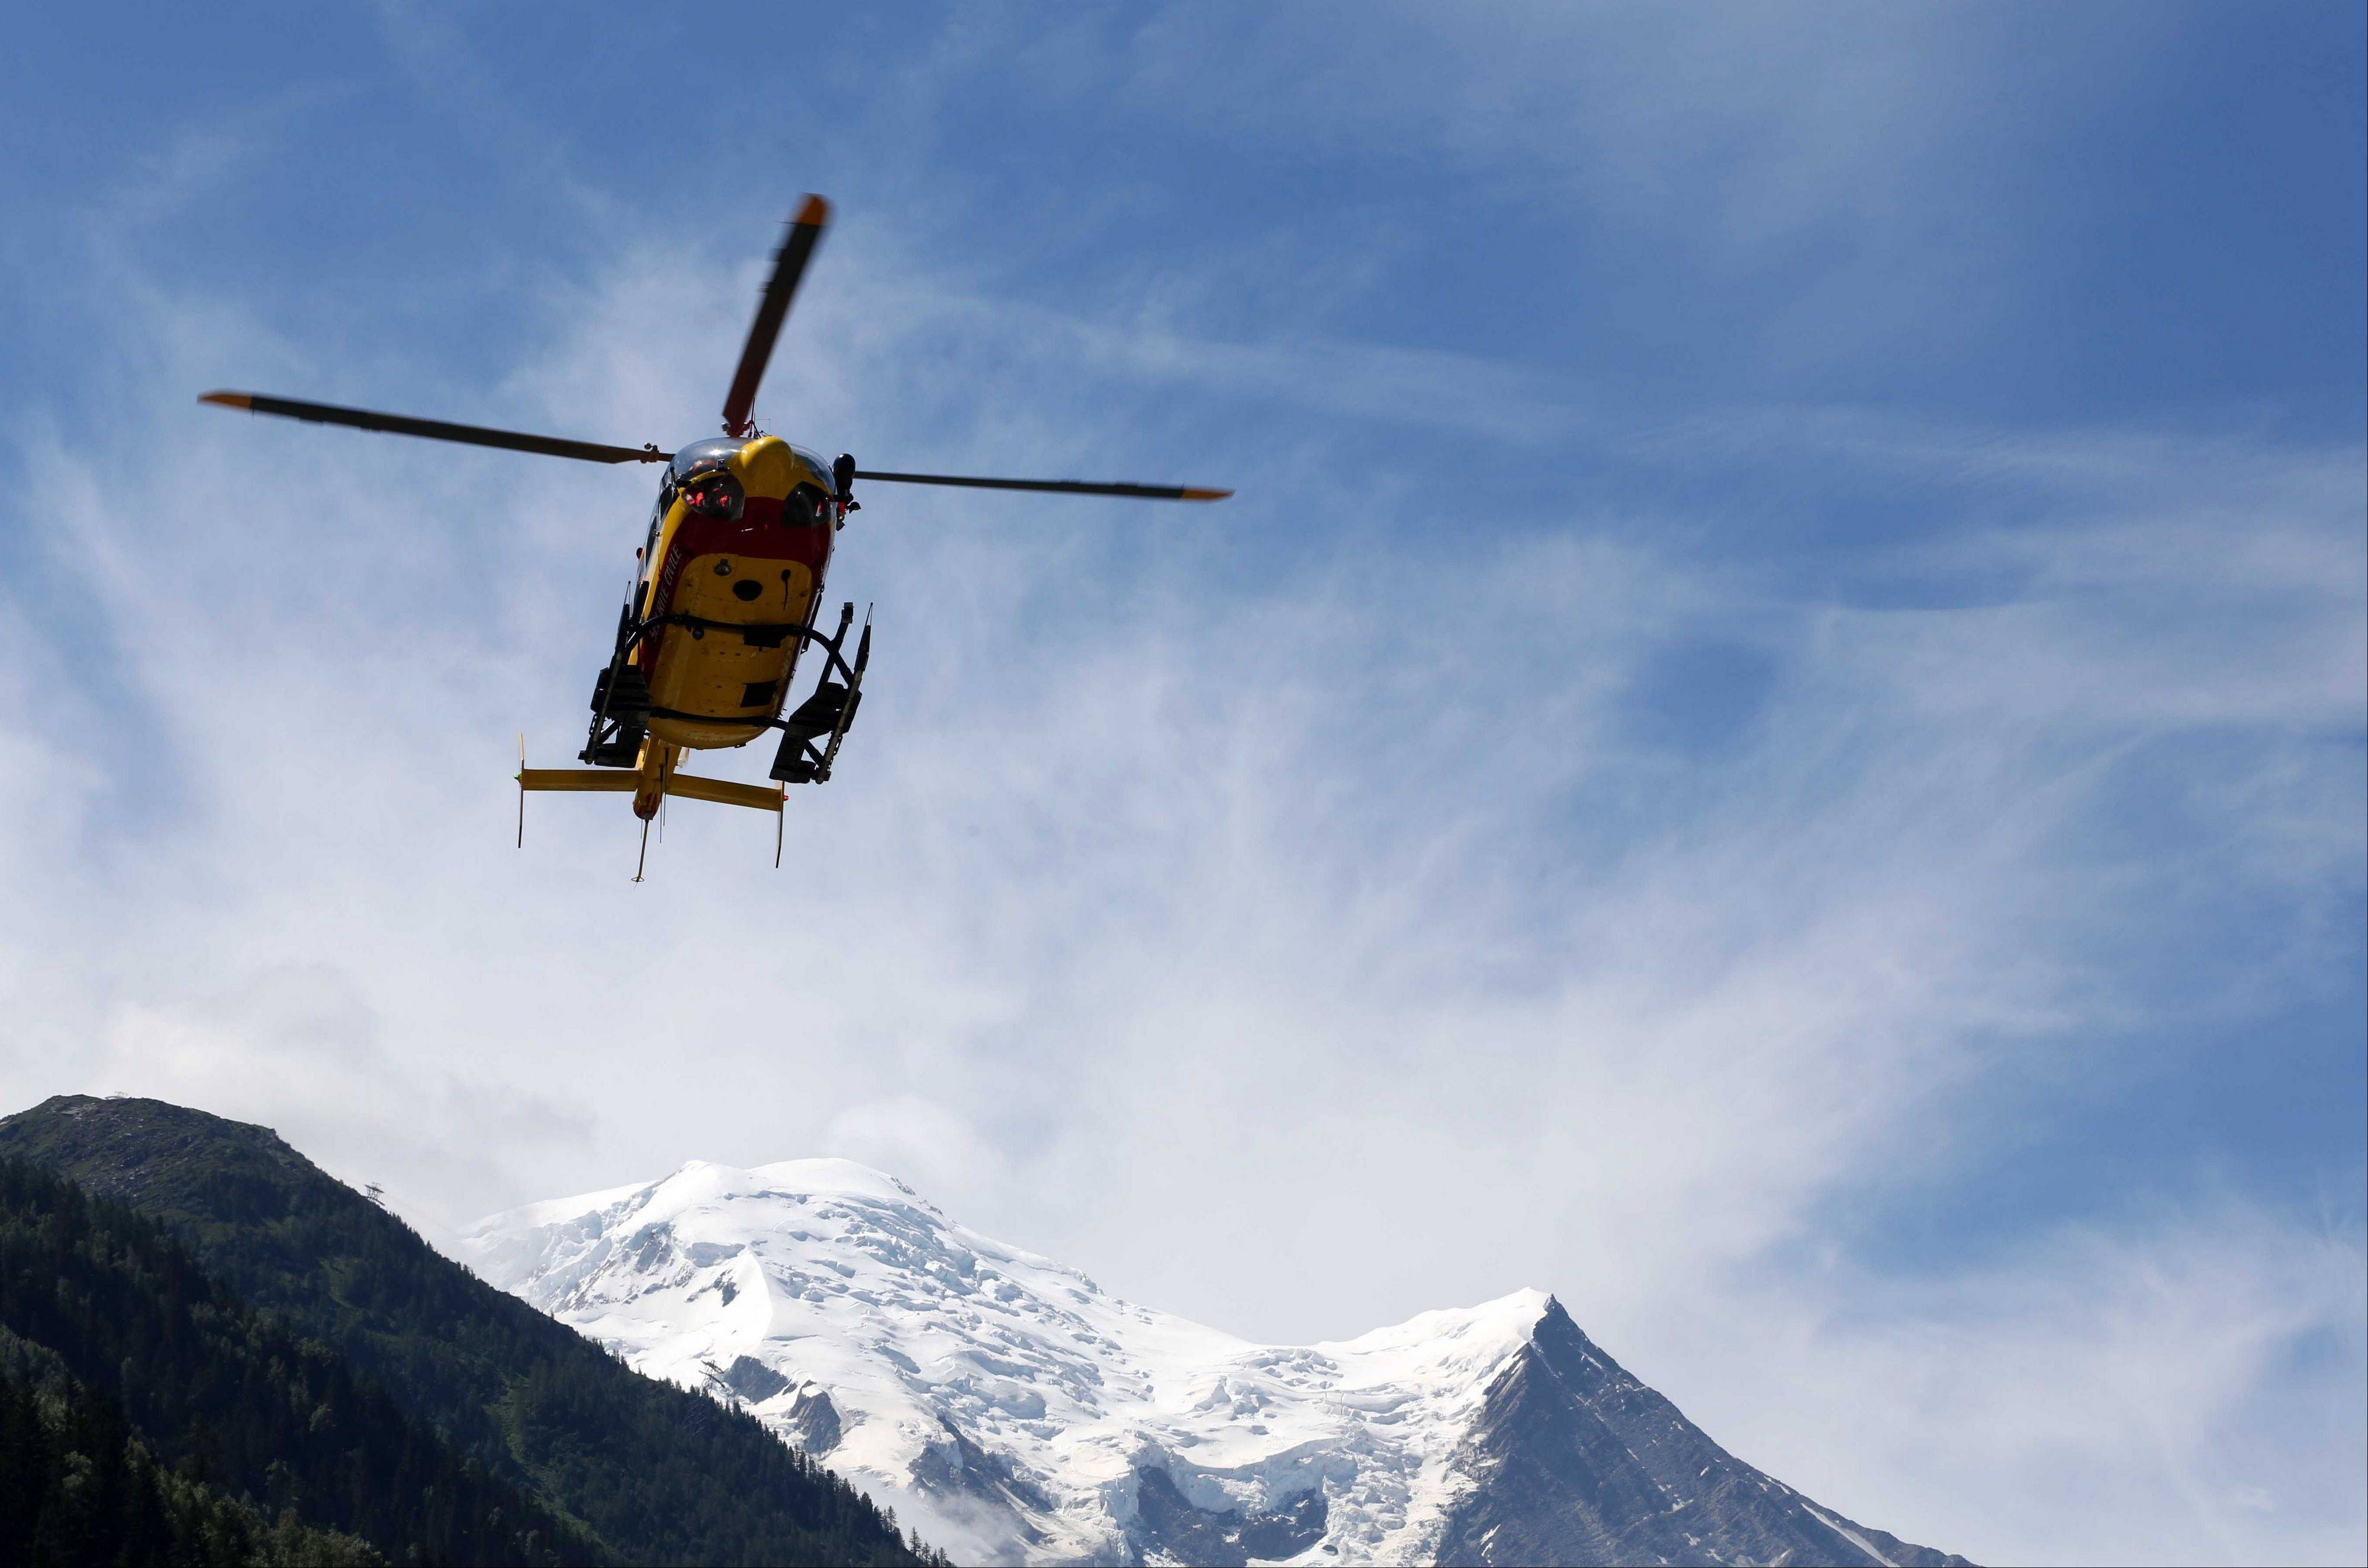 A rescue worker helicopter returning from the avalanche site, lands in Chamonix, French Alps, Thursday, July, 12, 2012. A slab of ice broke off Thursday high in the French Alps, sparking an avalanche that swept nine Europeans to their deaths as they tried to climb Mont Blanc, authorities said. Eleven other climbers were hospitalized and at least four are still unaccounted for.